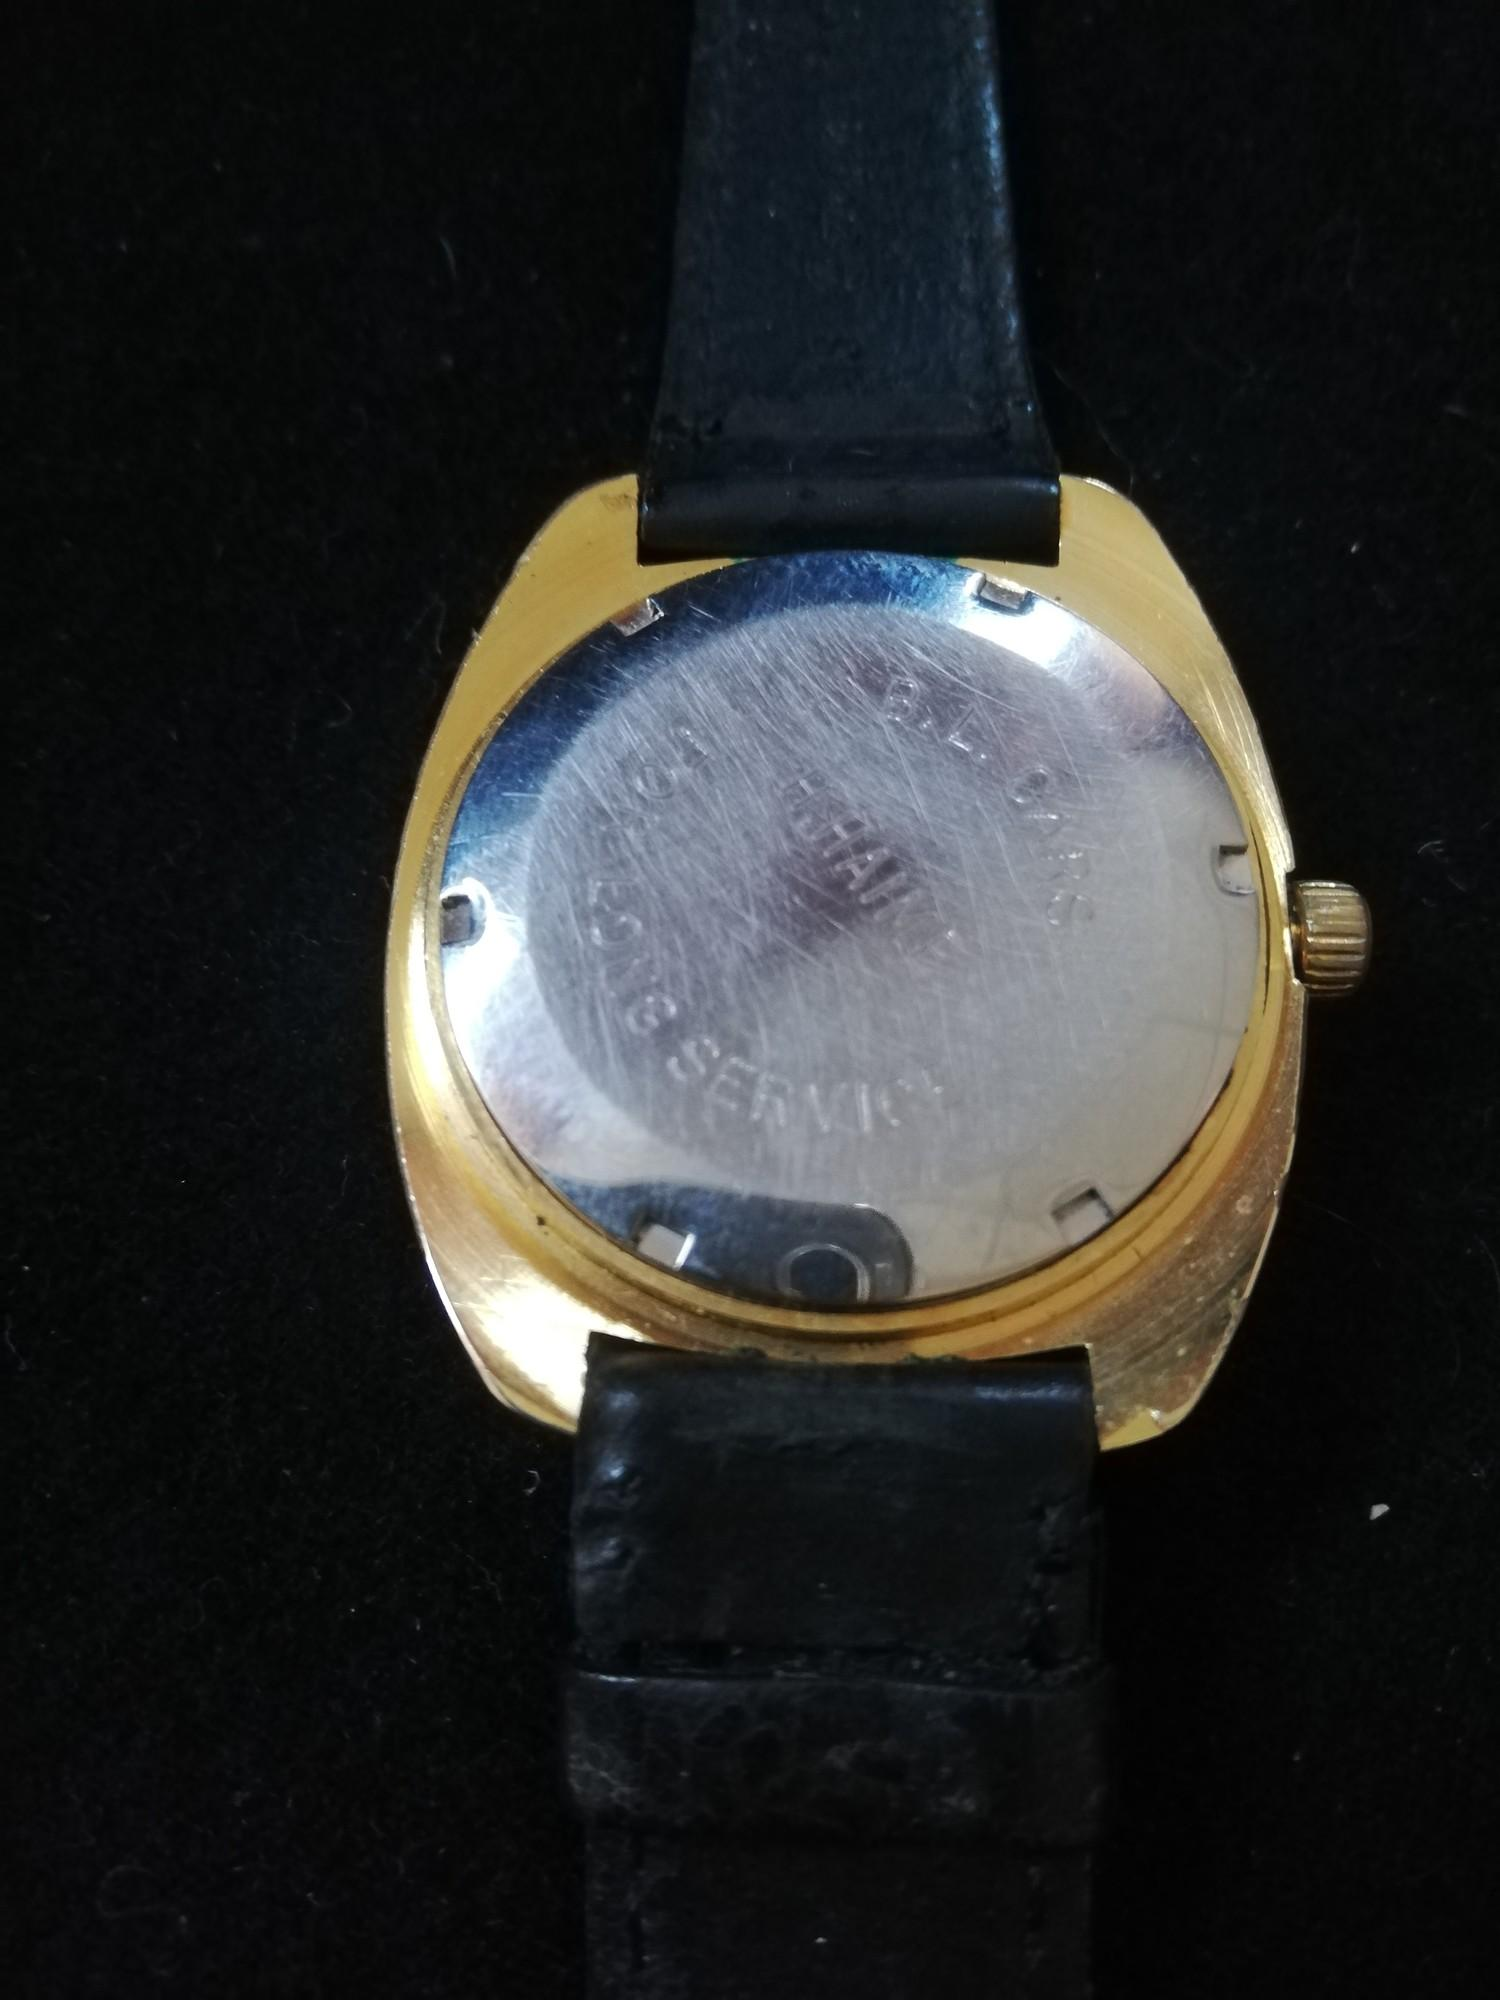 Garrard gold plated wristwatch with automatic movement in worn condition with inscription to back - Image 2 of 2